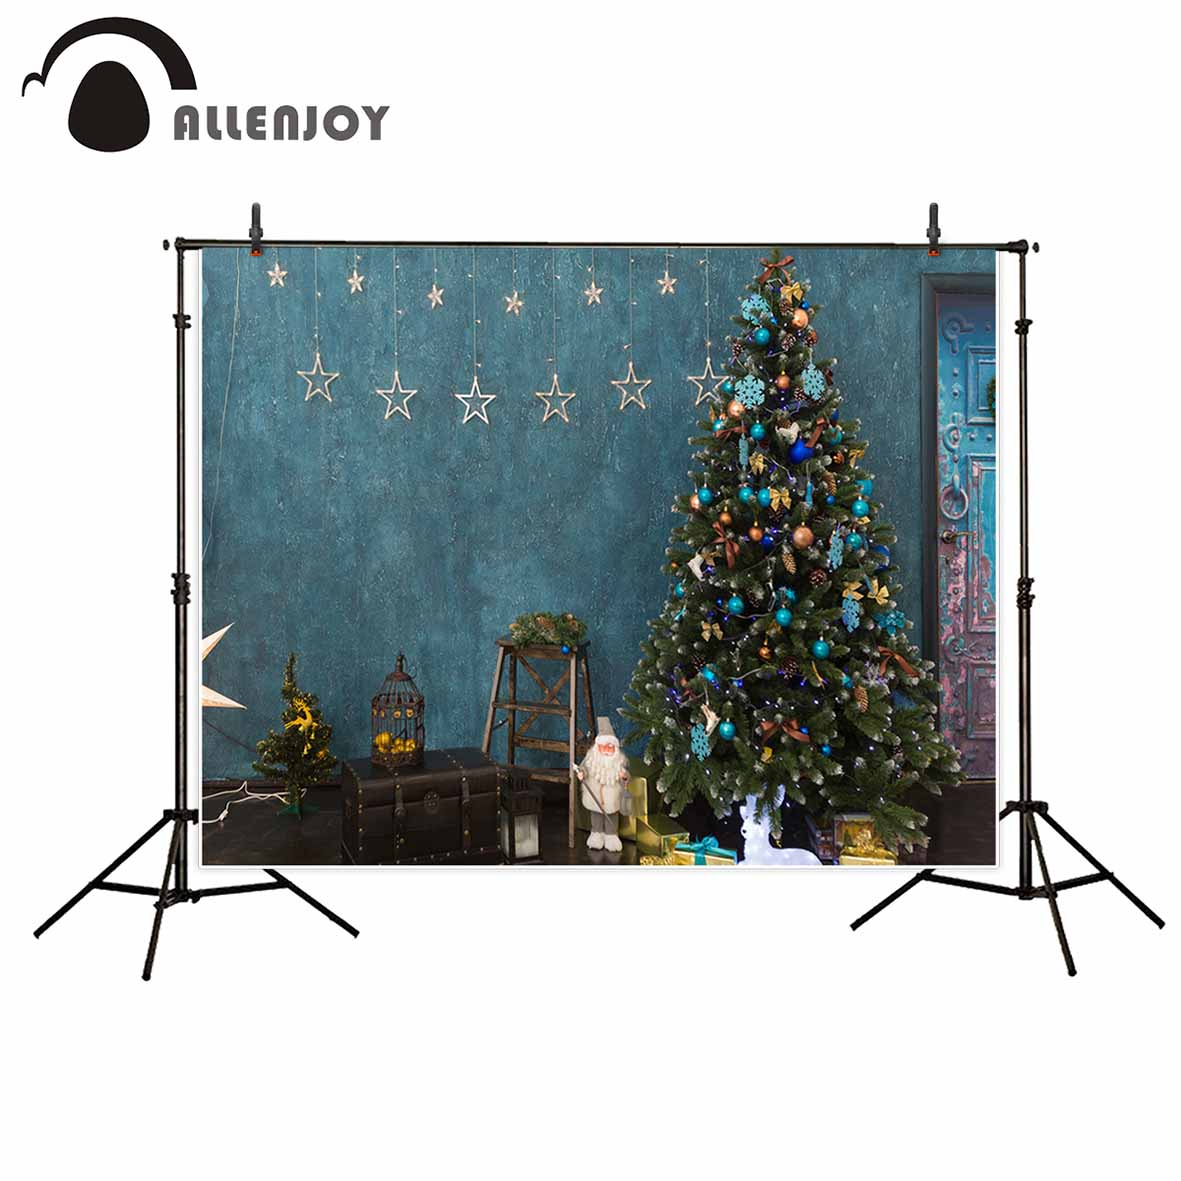 Allenjoy photography backdrop Blue Christmas Tree Santa Claus Decorative Star Gifts background photo studio camera fotografica